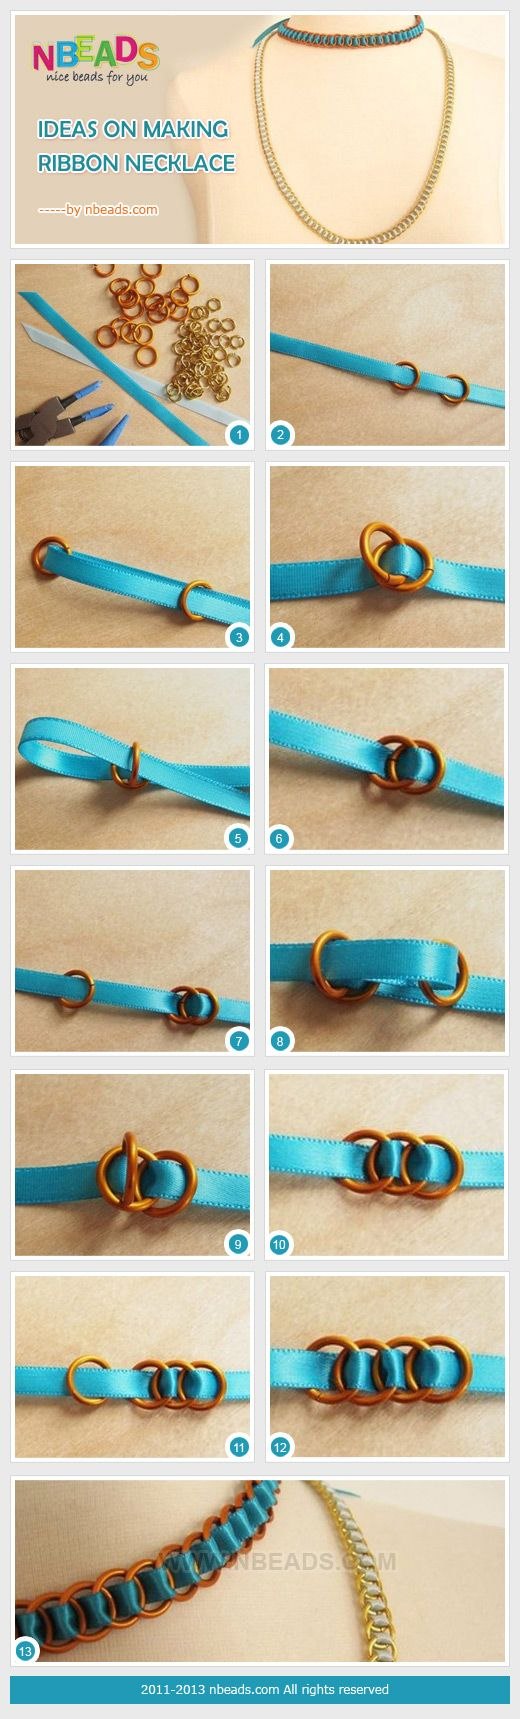 Ideas on making ribbon necklace pinterest for Ribbon crafts to make